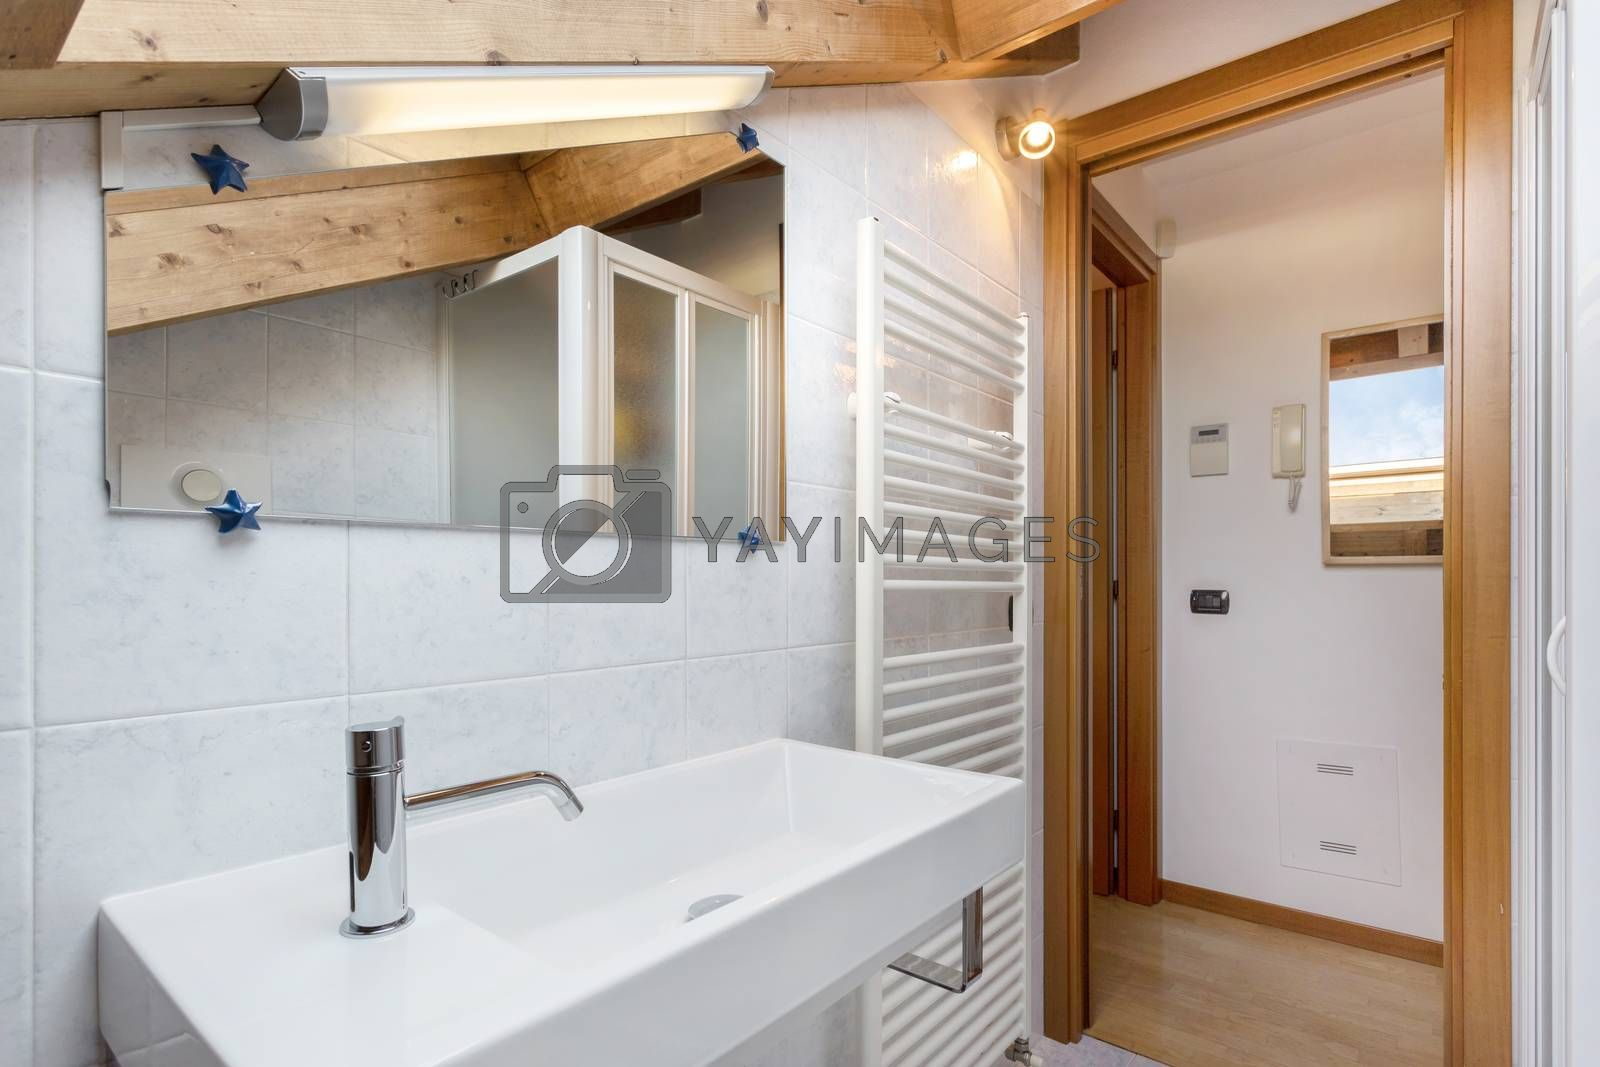 Practical and cozy bathroom with towel radiator, toilet, cabinet and sink. Roof with exposed wooden beams. Classical italian design and style.